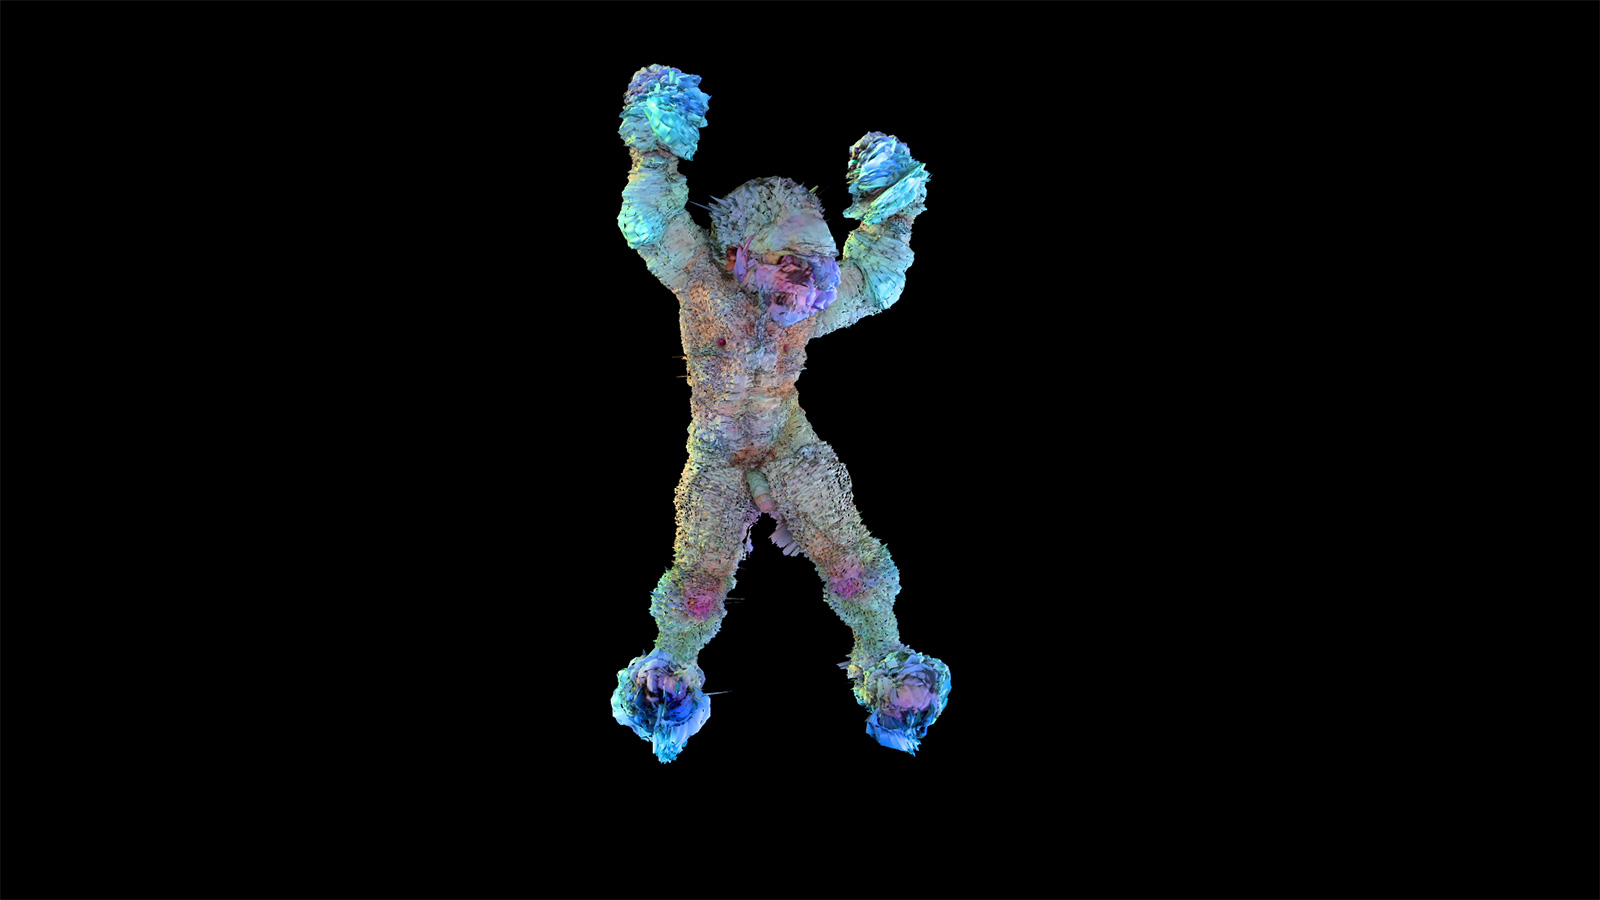 A brightly colored figure dances in a black void.